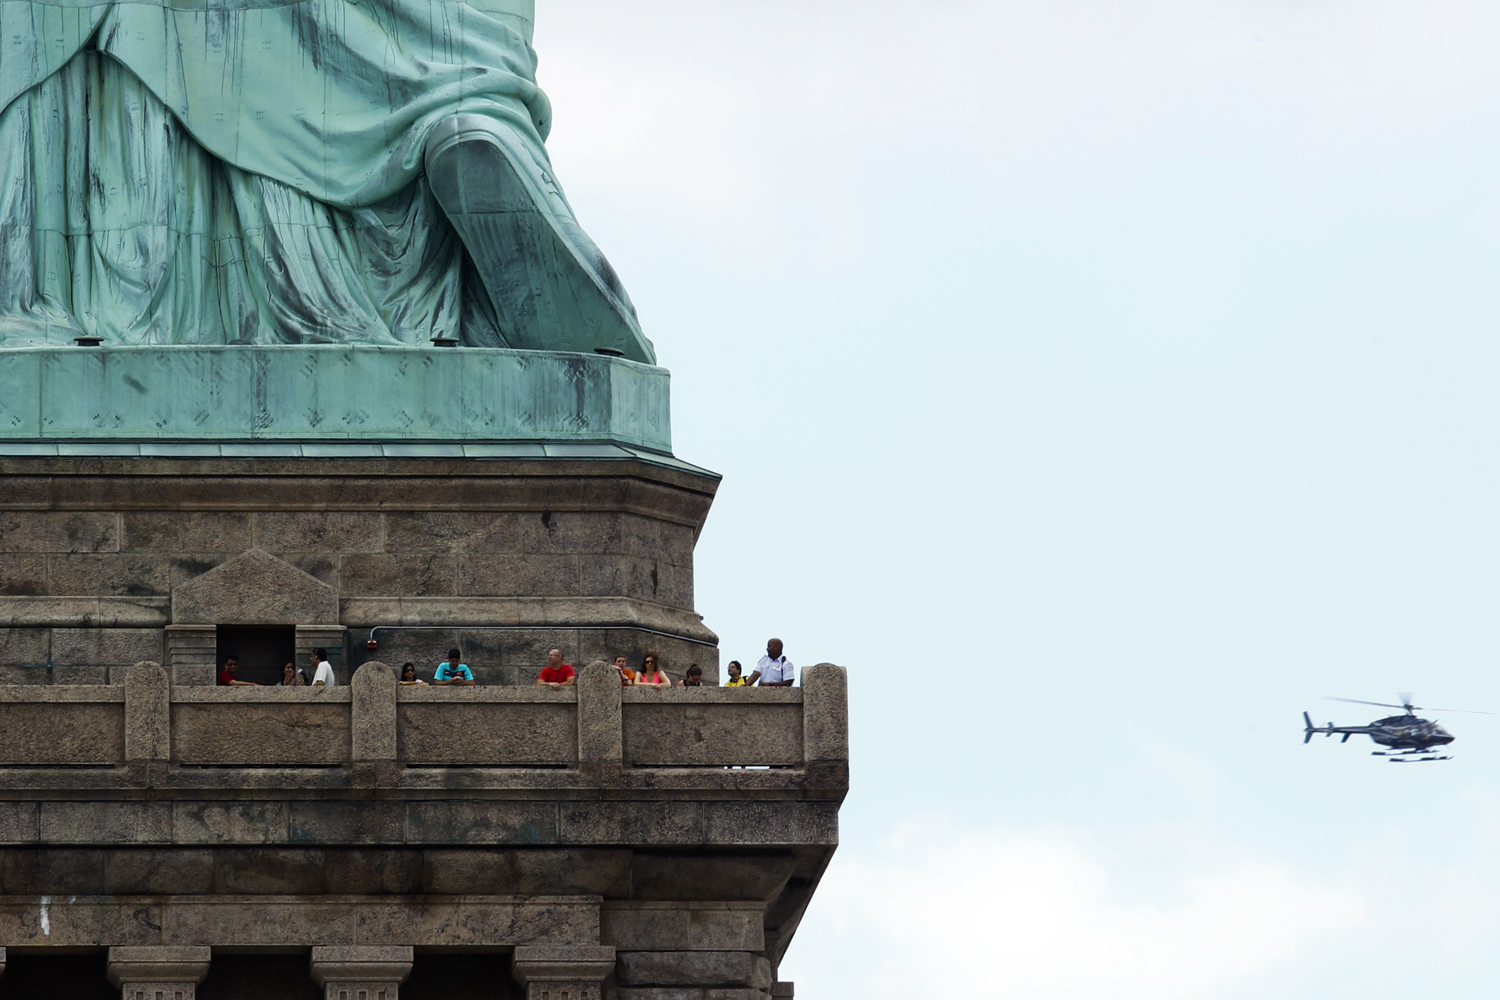 July 4, 2013. People visit the Statue of Liberty during the reopening ceremony in New York. Under steamy summer skies, tourists in New York flocked to ferries headed for the Statue of Liberty, re-opening with an Independence Day ceremony after closing in October as Superstorm Sandy approached.